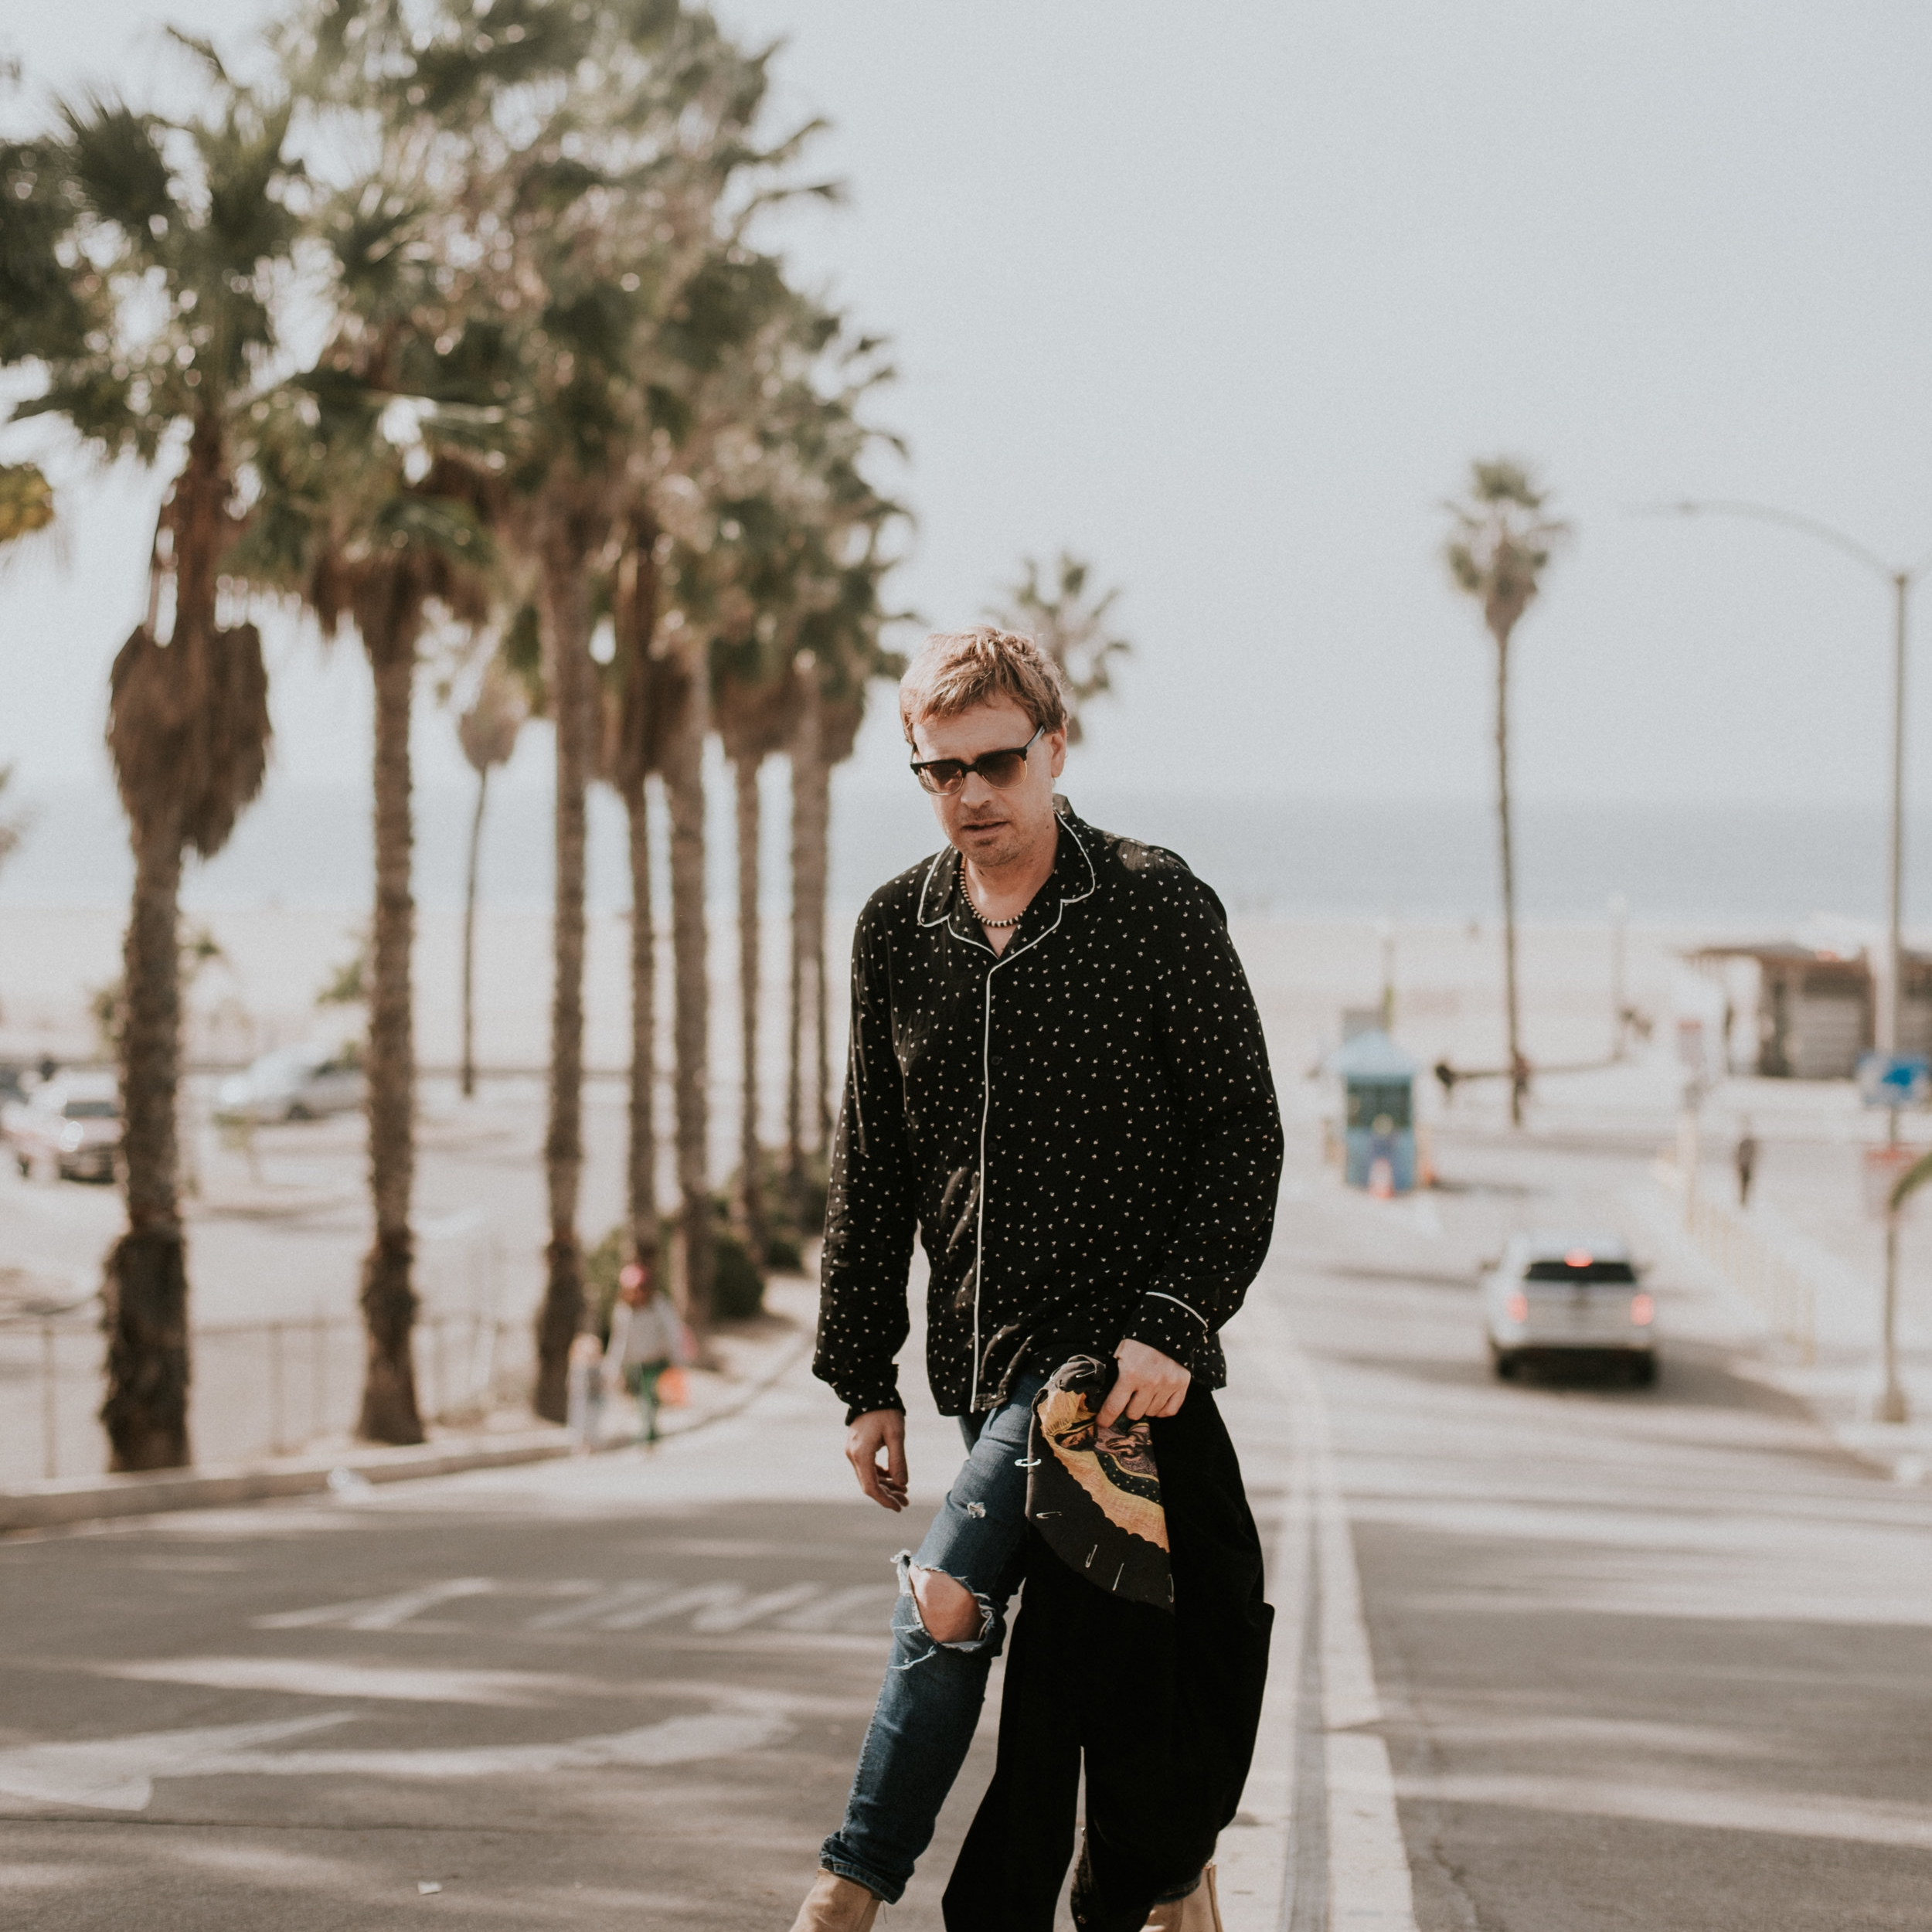 Aaron Vaughn / Stylist   Sign: Capricorn  Schedule: Tuesday, Thursday, Sunday  Instagram: @itsaaronvaughn  Hobbies: Digging for vintage clothes & vinyl  Experience: 10+ Years  Local Favorite: La Cabaña & Gjusta  Spirit Animal: Dolphin  Favorite Food: Ice cream  Salty Dream Destination: Bora Bora